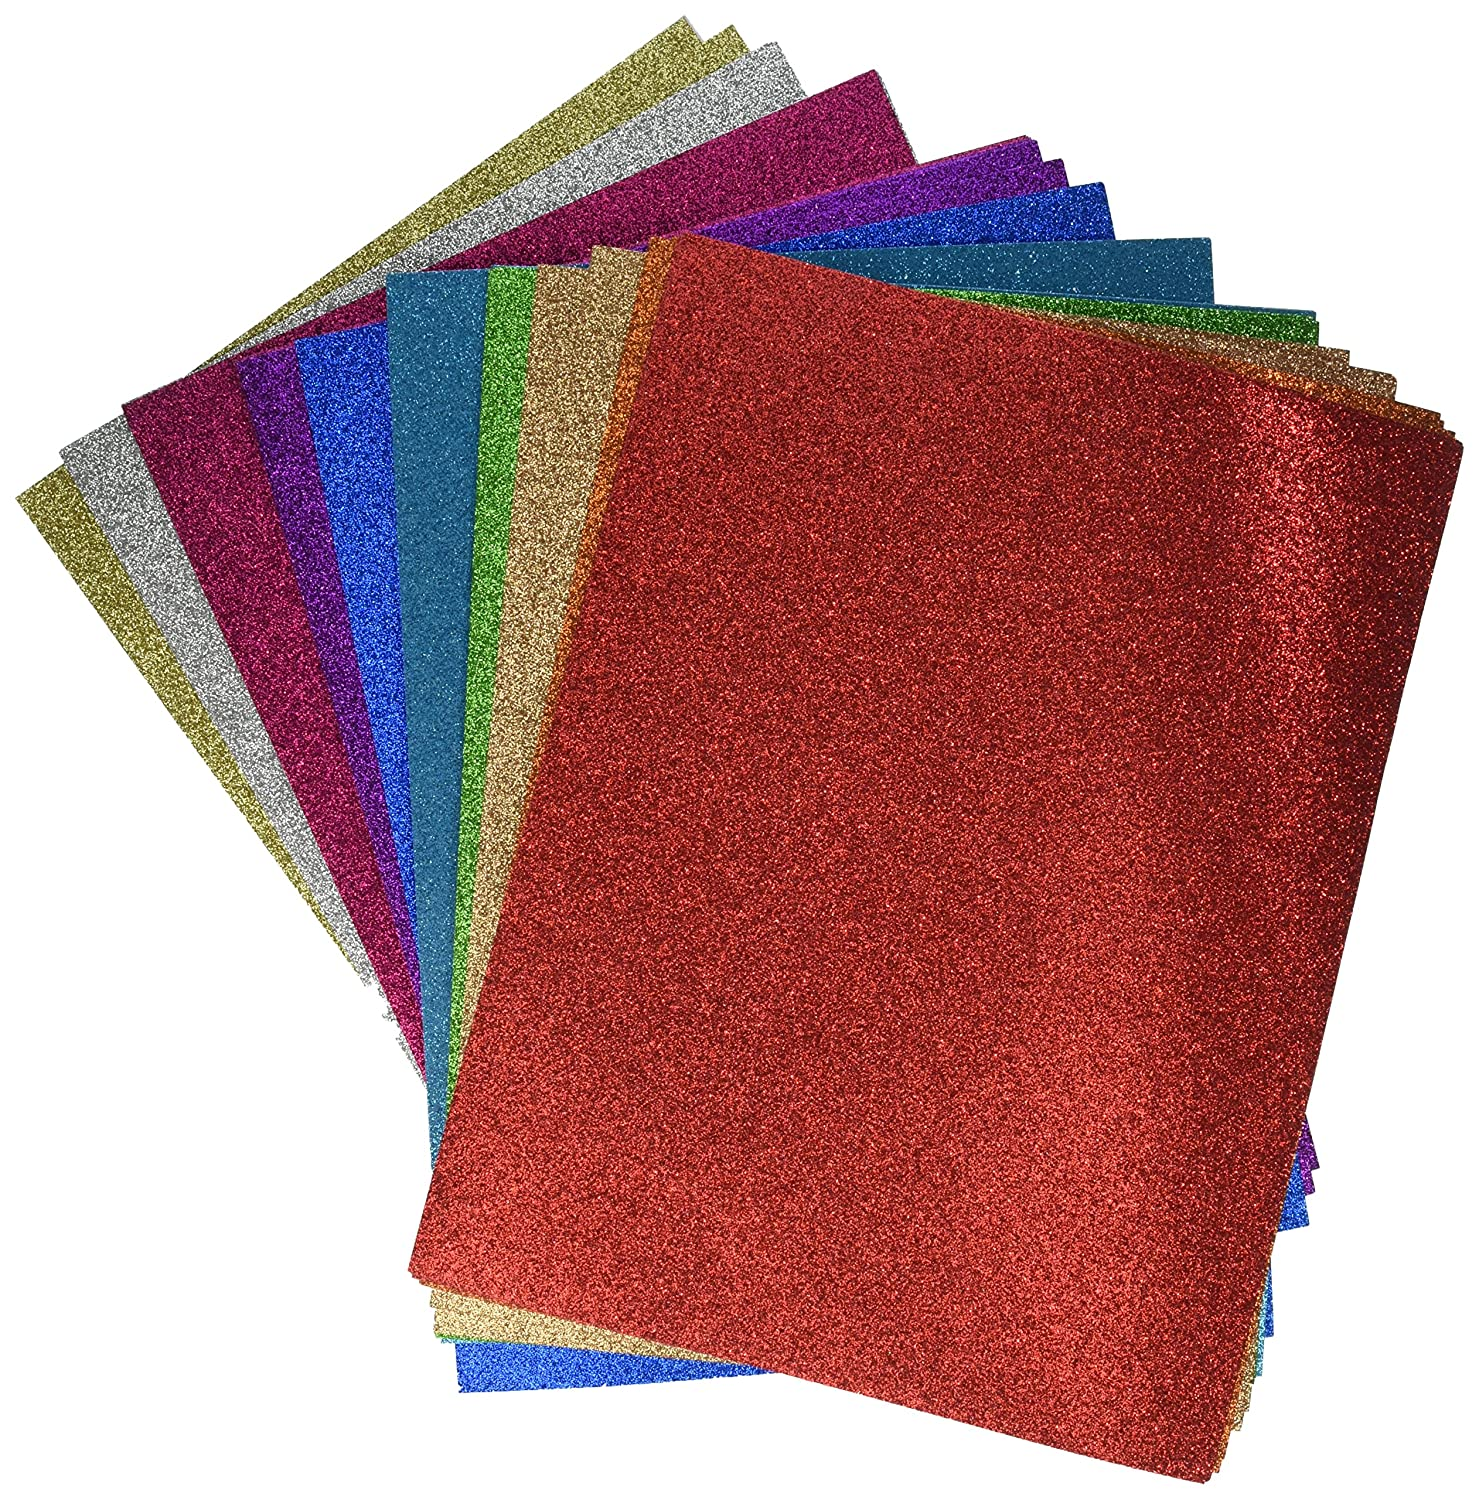 Darice Glitter Cardstock Paper Pack, Heavyweight 40 sheets Pack, 10 assorted colors GX-1700-25